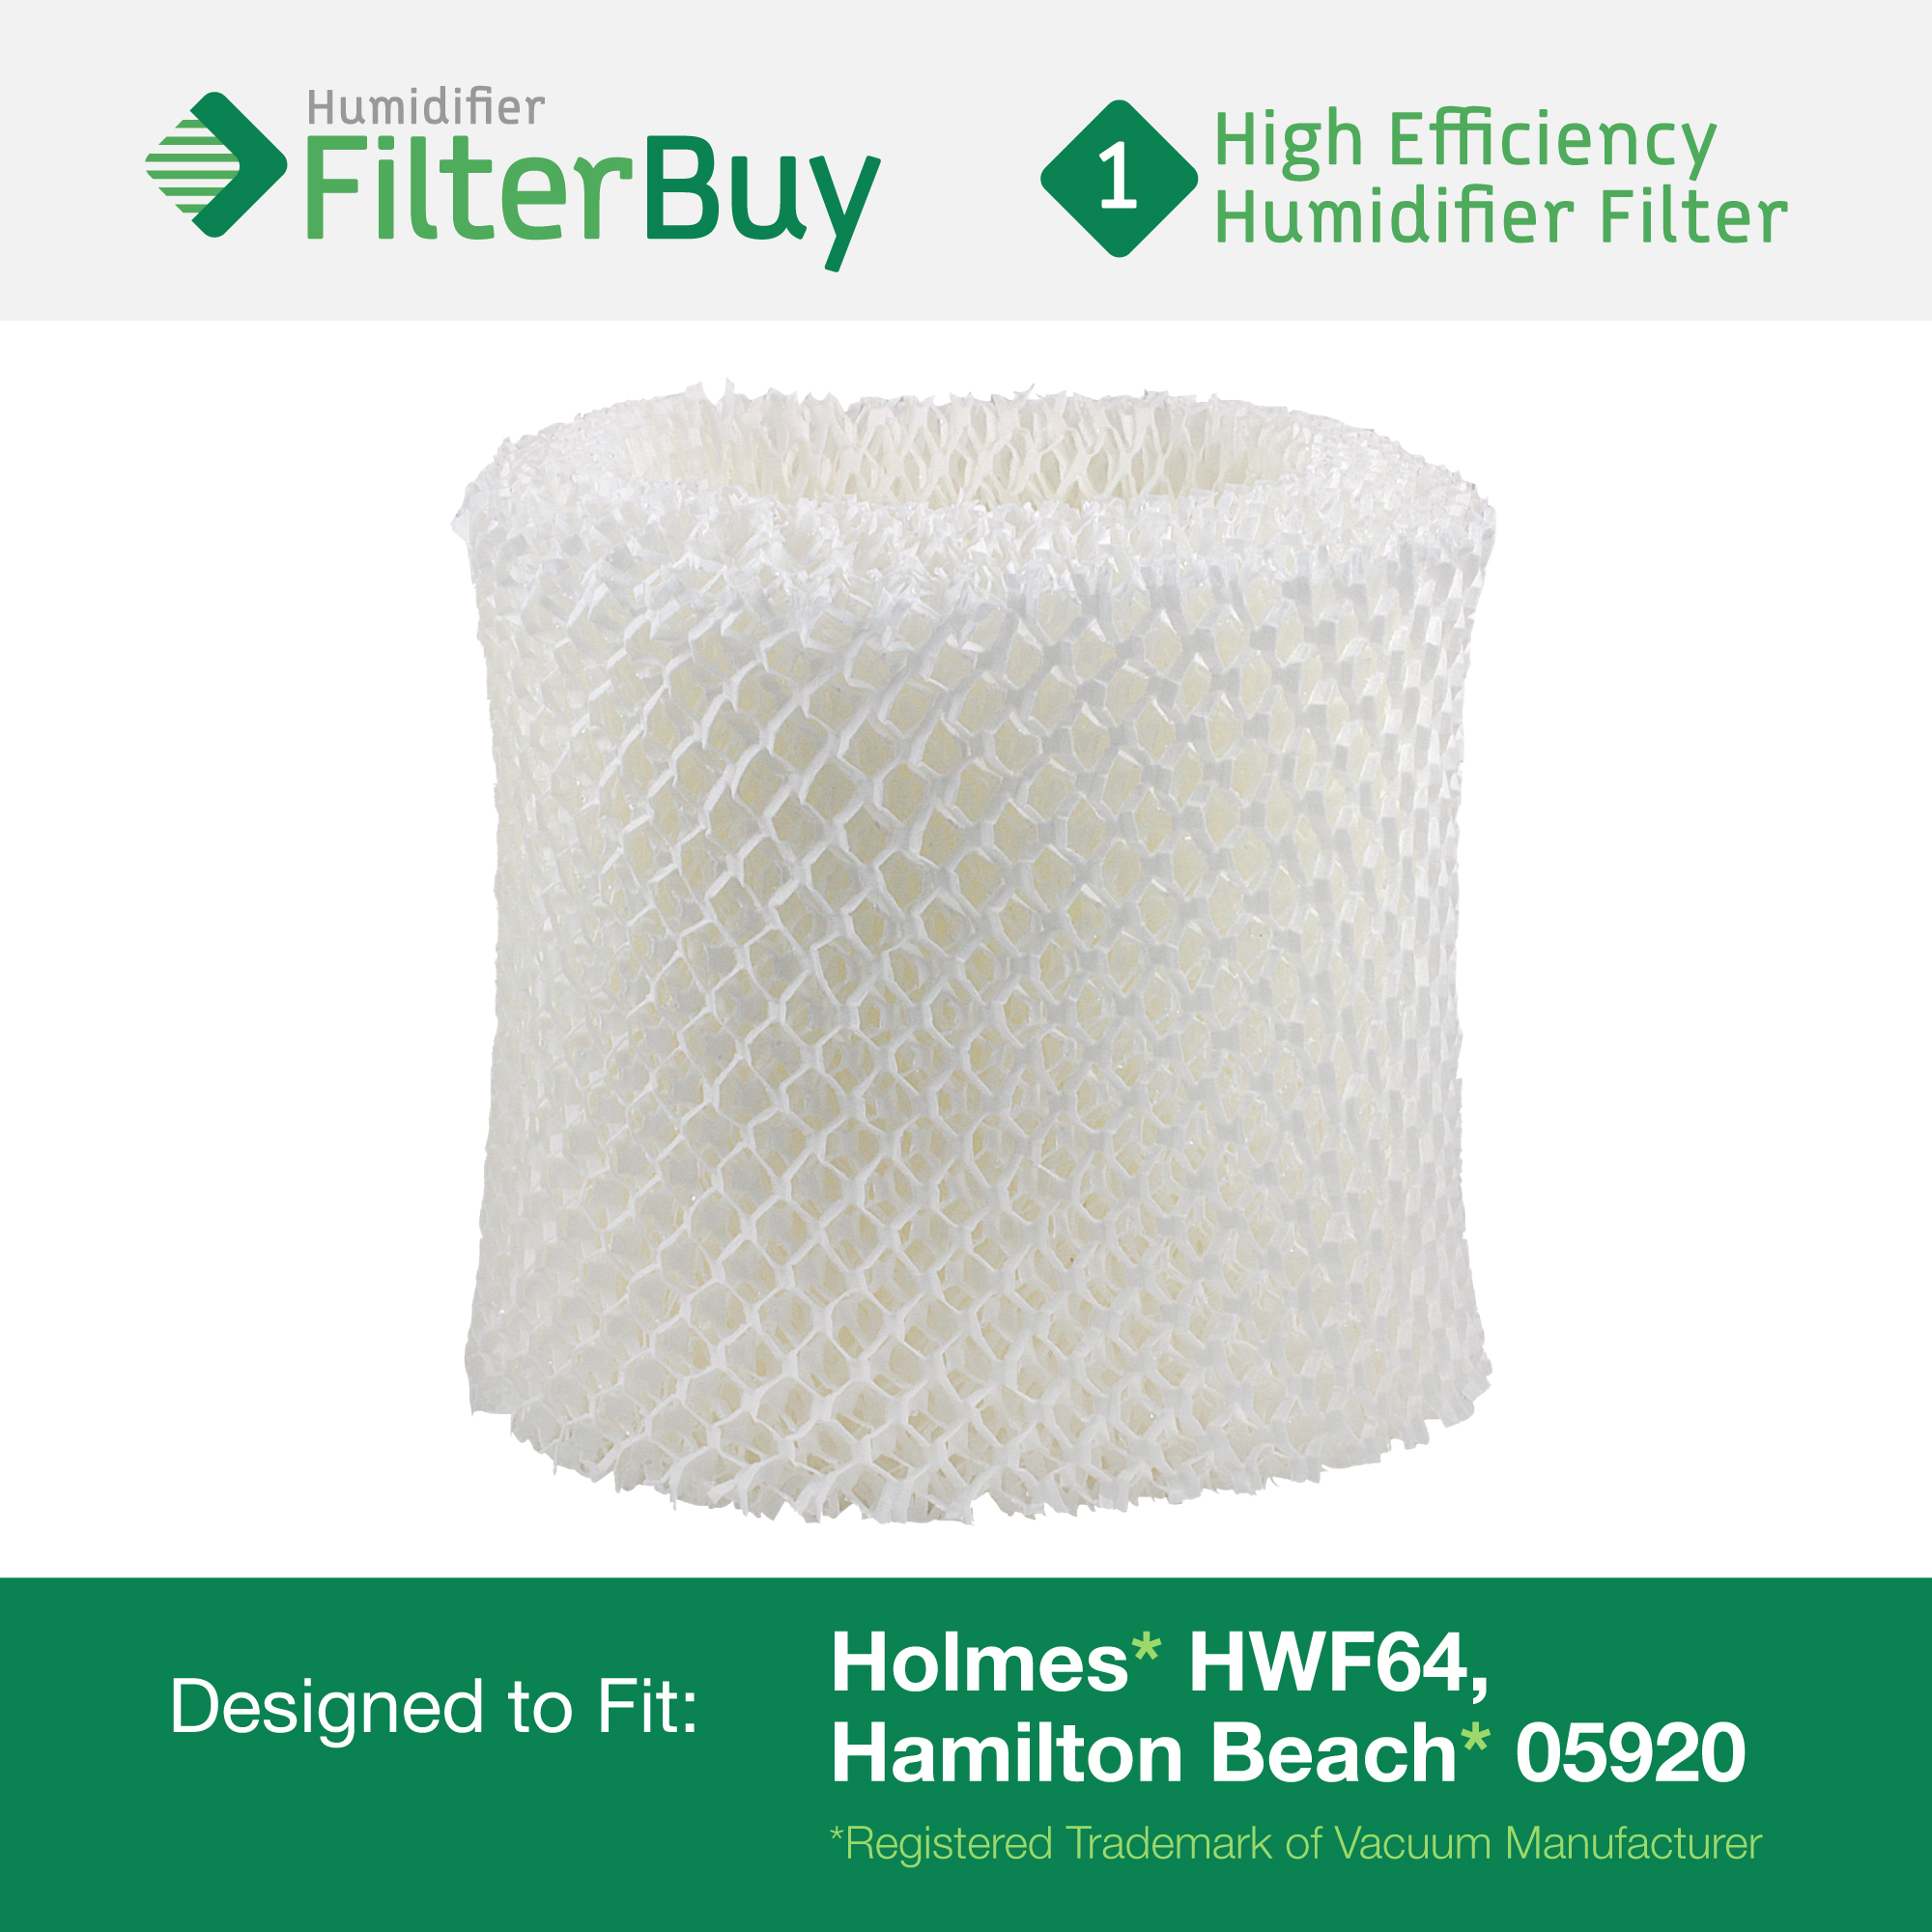 HWF64 Holmes Humidifier Replacement Filter. Fits Holmes humidifier models HM1645, HM1730, HM1745, HM1746, HM1750, HM2220, and HM2200. Designed by AFB in the USA